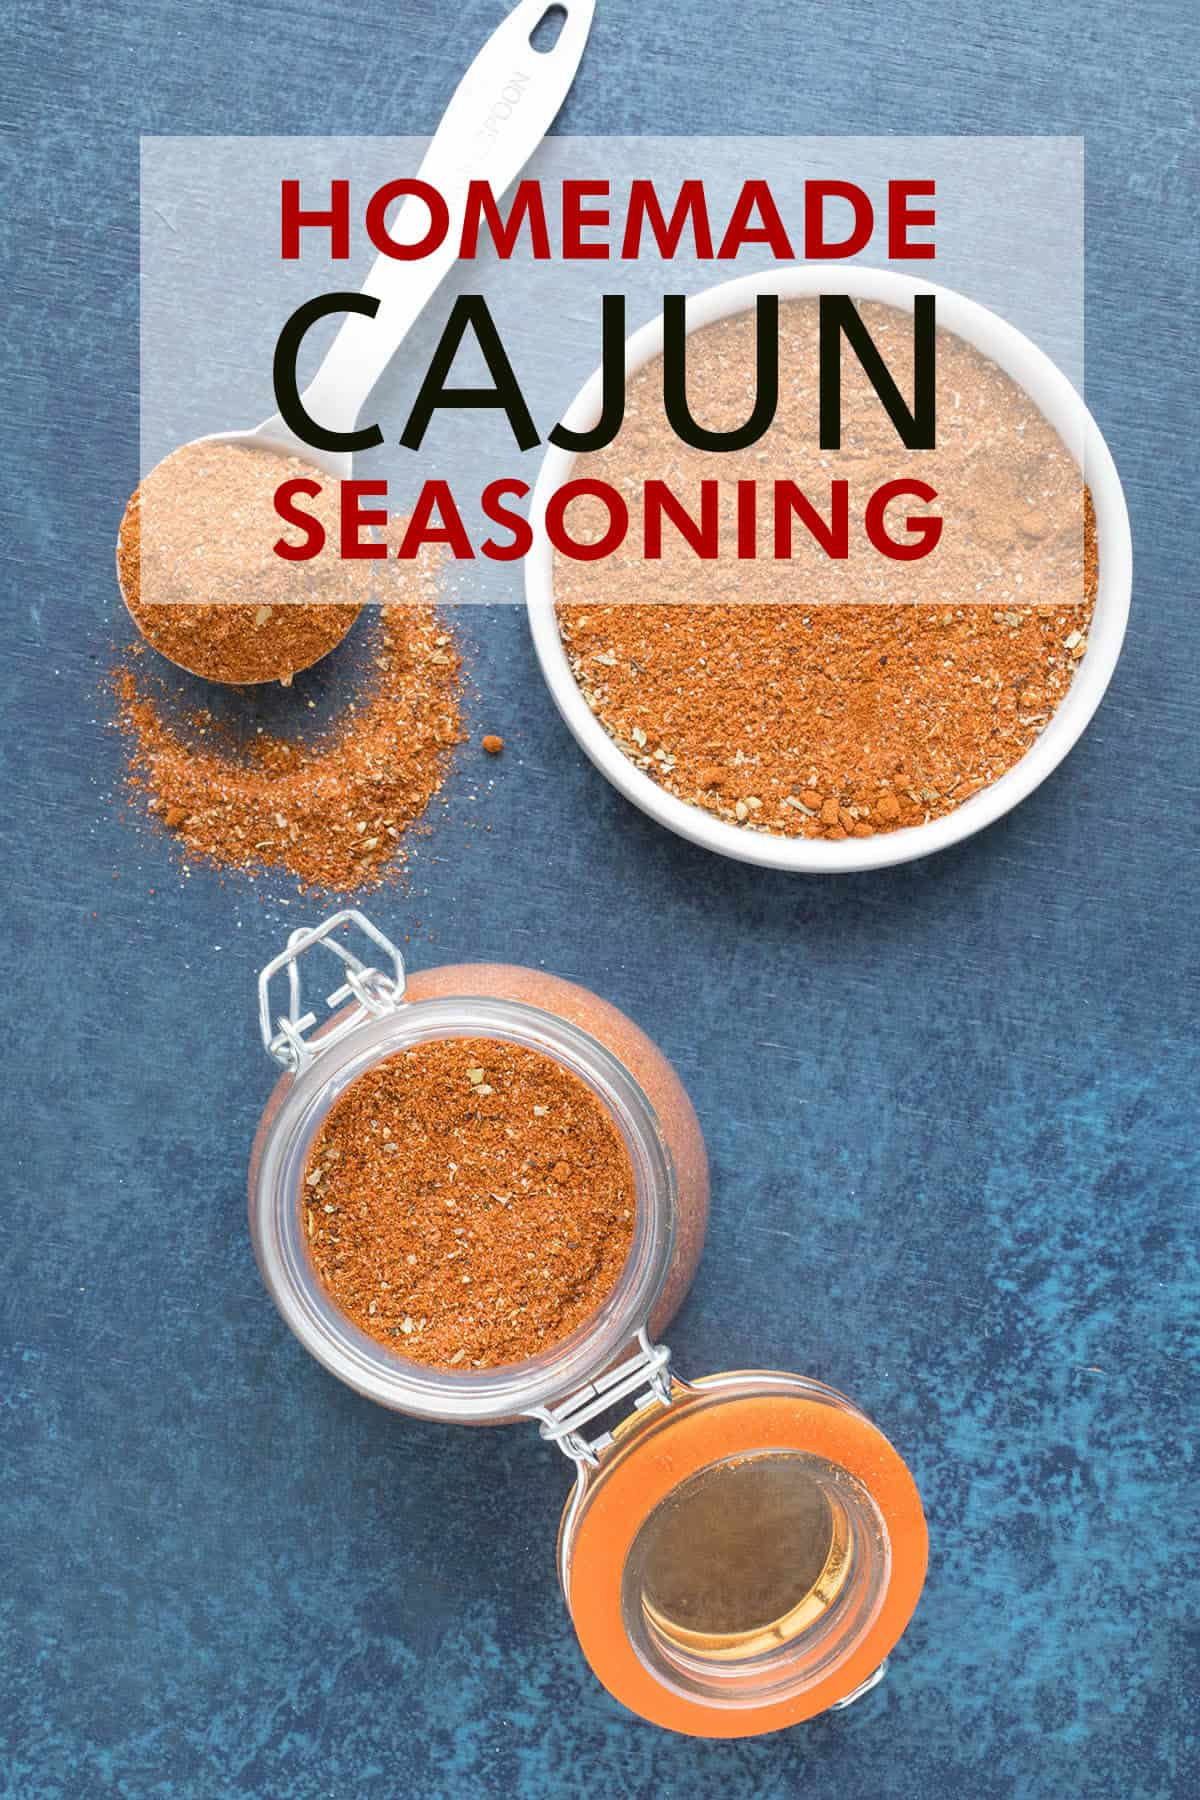 Homemade Cajun Seasoning - Recipe